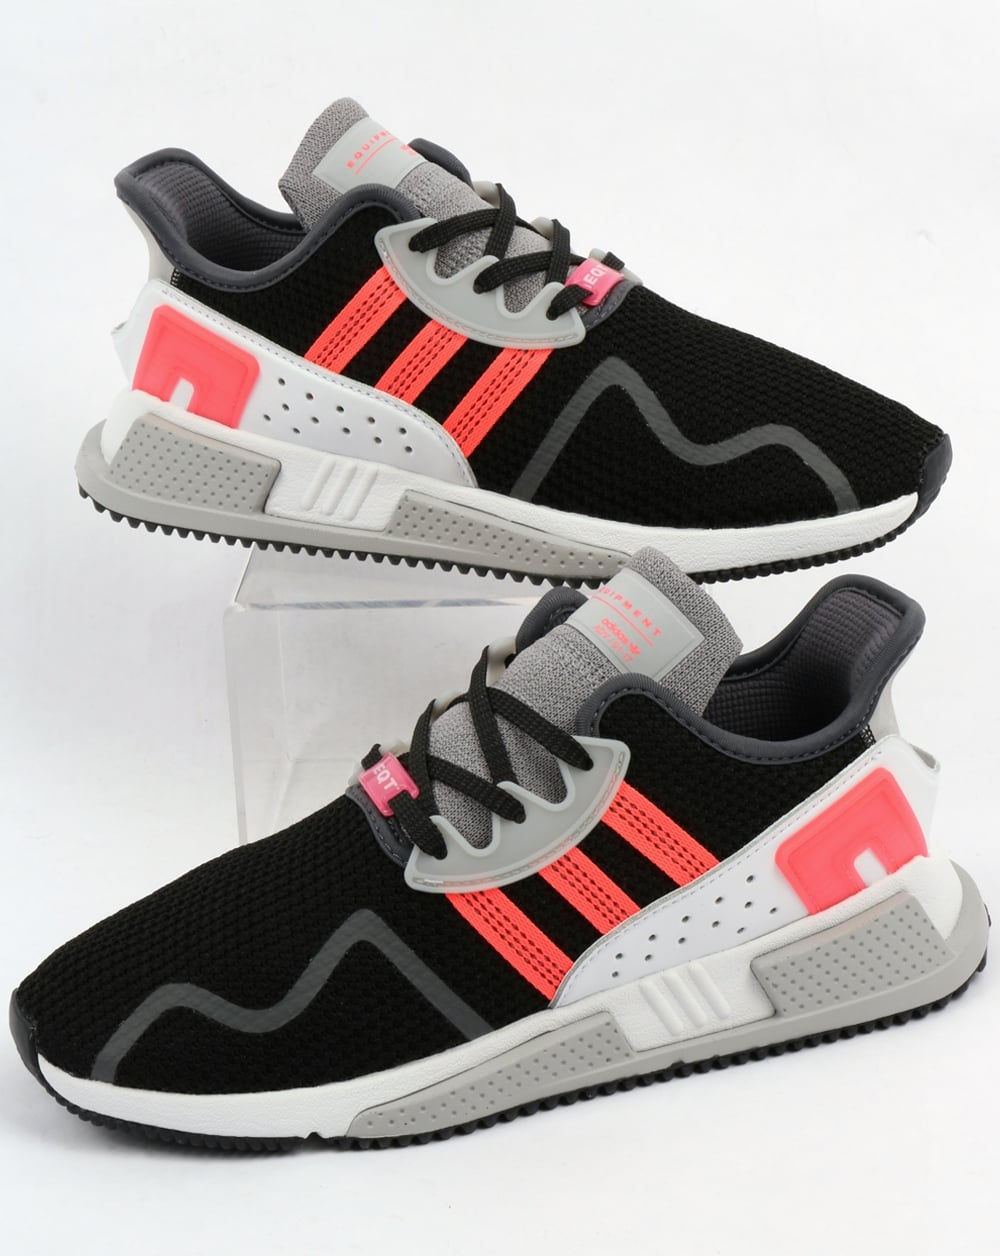 newest 72ed3 9acab Adidas EQT Cushion Adv Trainers Black/Pink/White